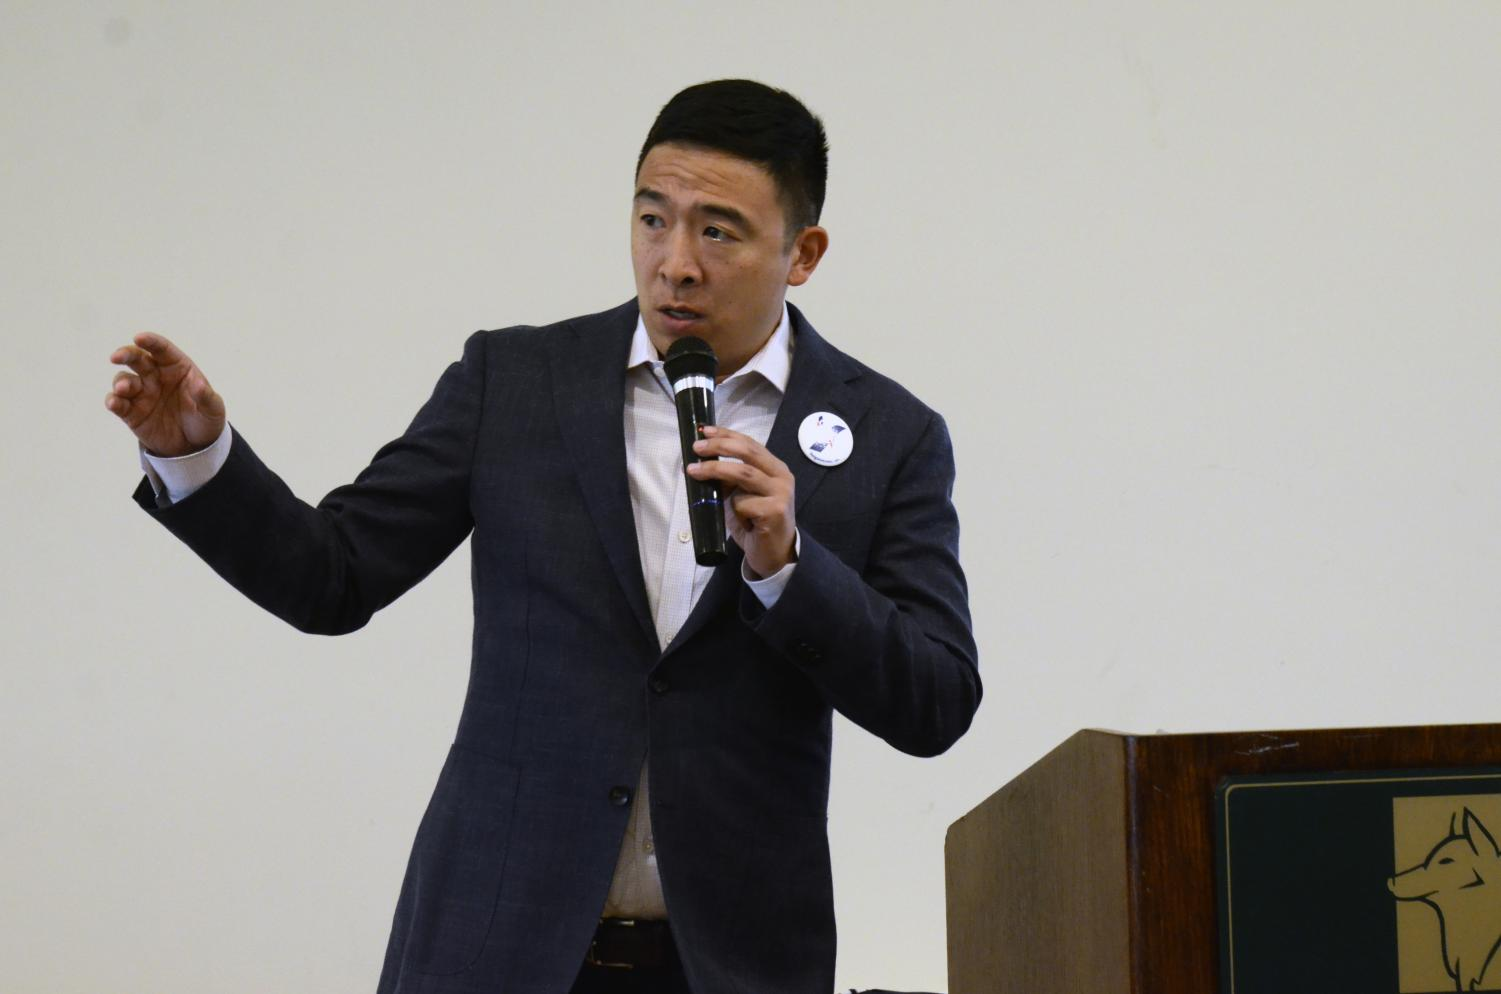 """In his speech at a fundraiser in Morgan Hill yesterday, Democratic presidential candidate Andrew Yang called himself """"the opposite of Trump: an Asian man who likes math."""" Of people who voted for Trump in 2016, 10 percent have said that they support Yang."""